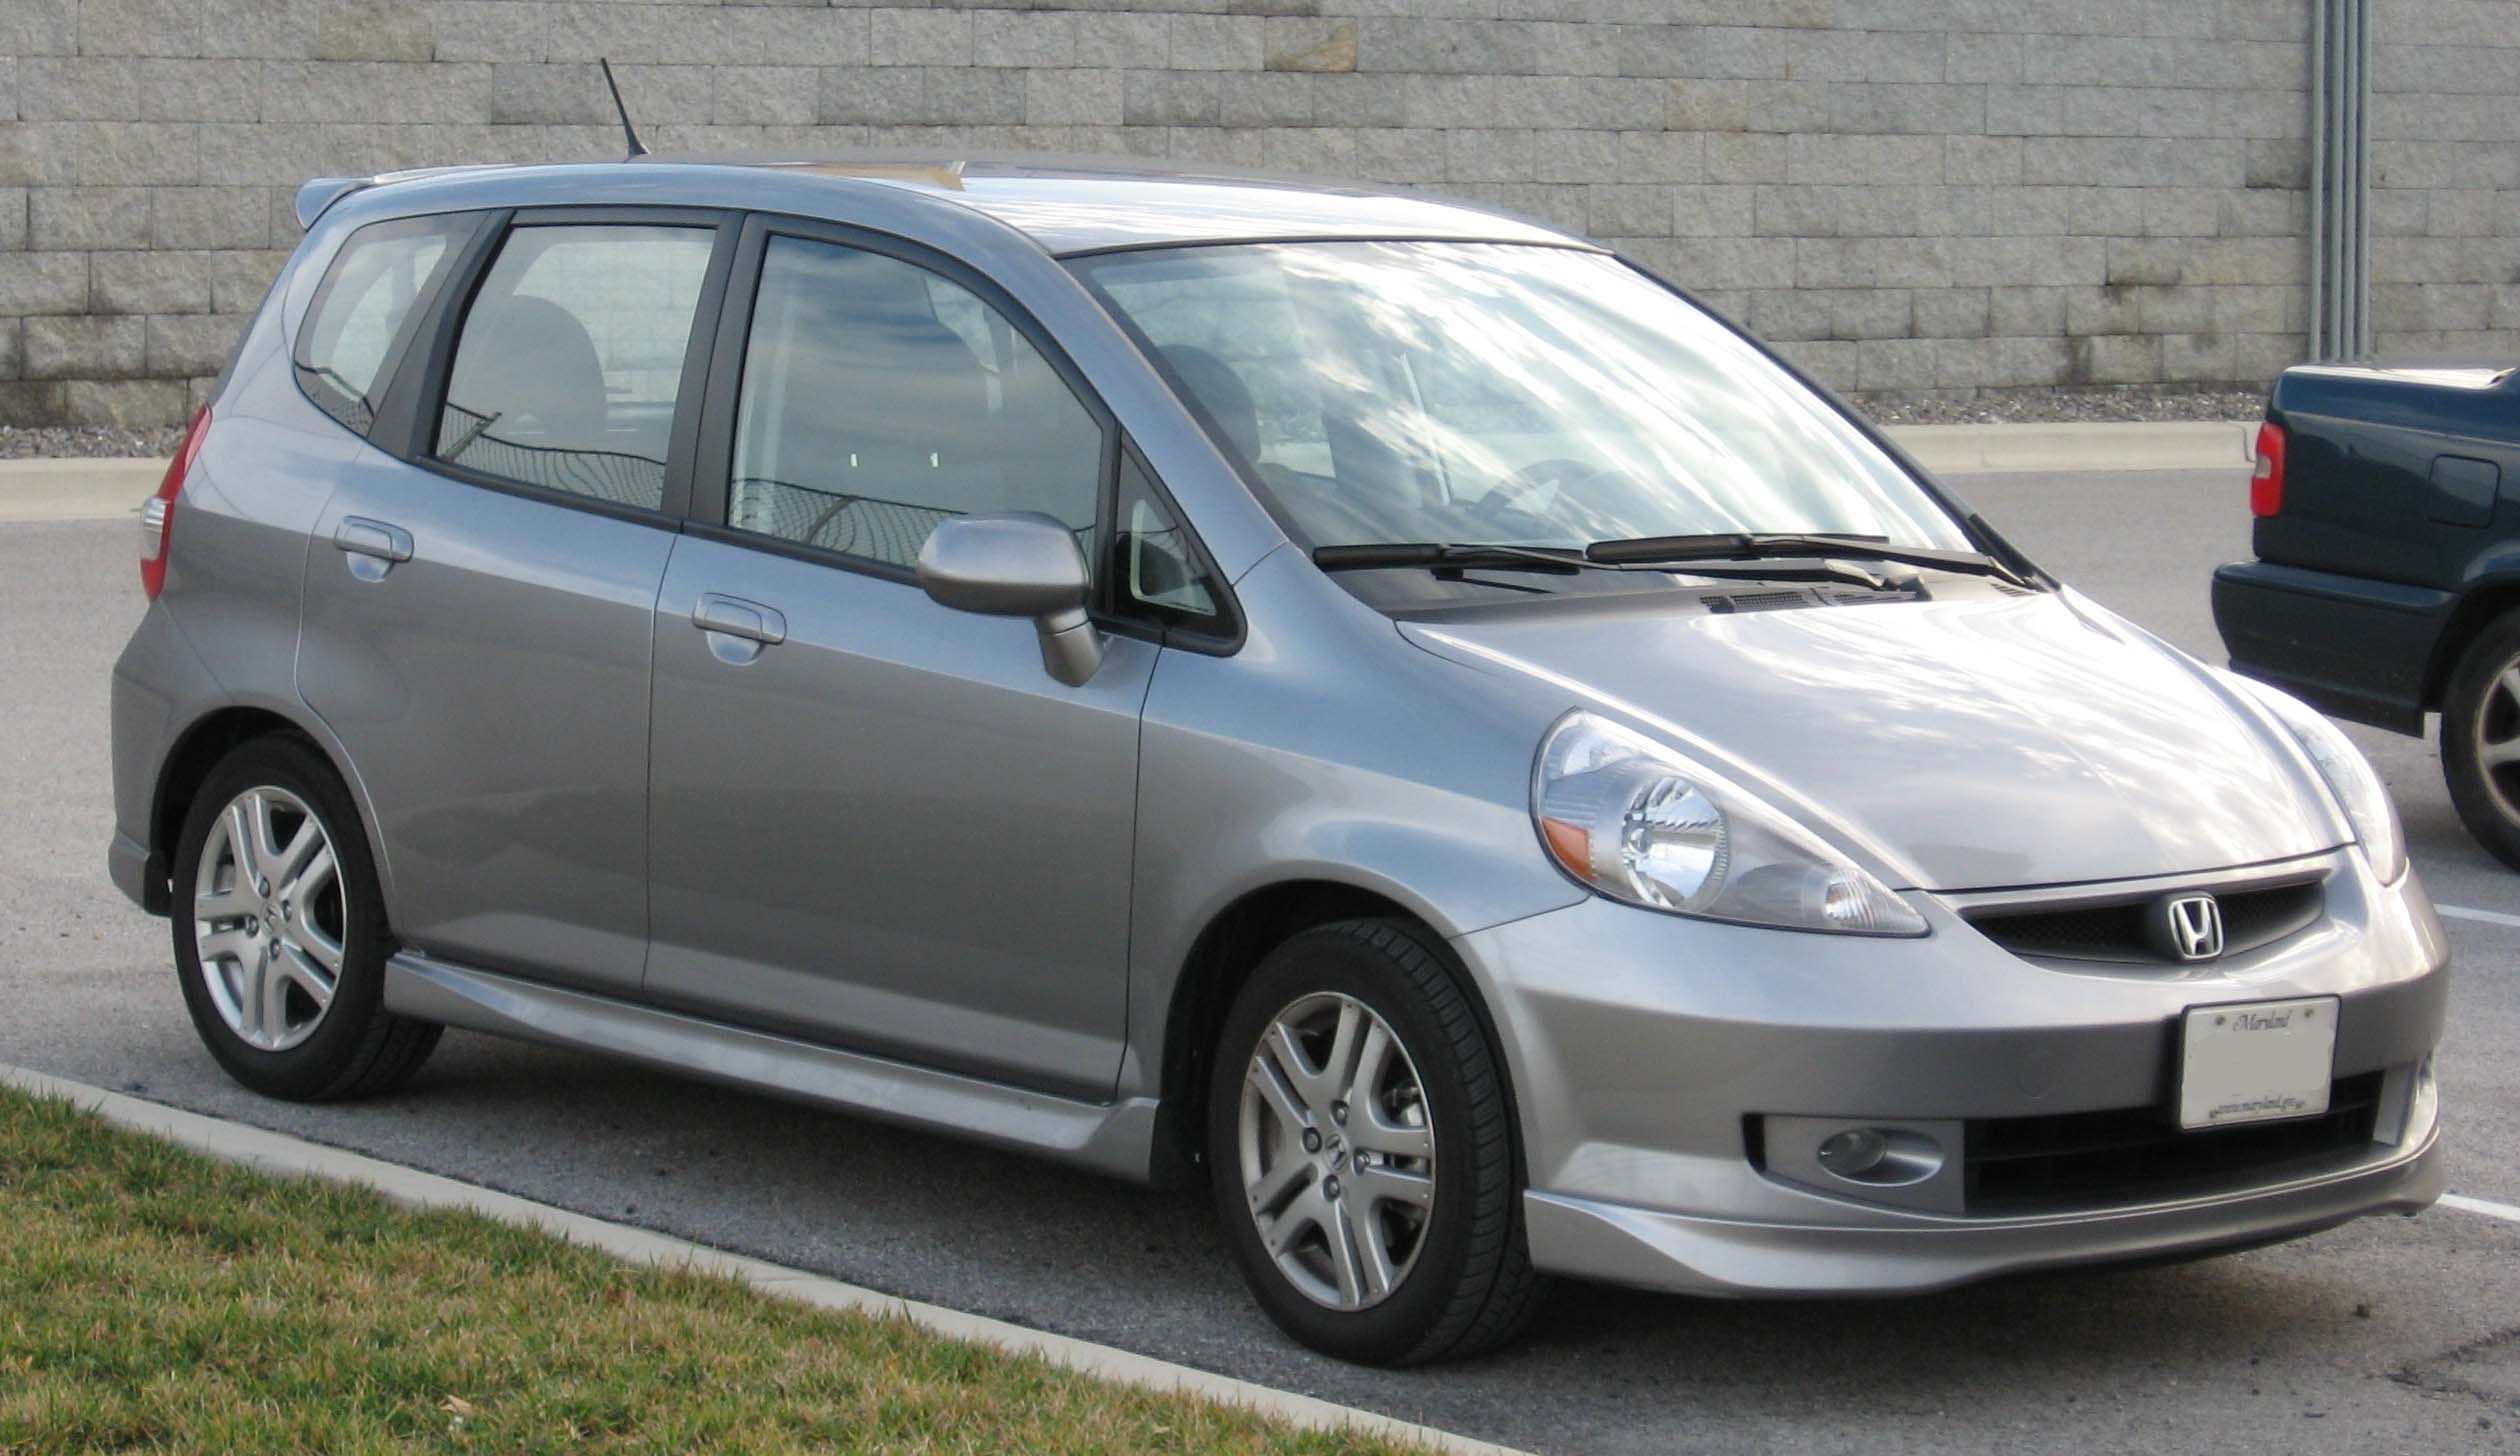 File:2007-Honda-Fit-Sport.jpg